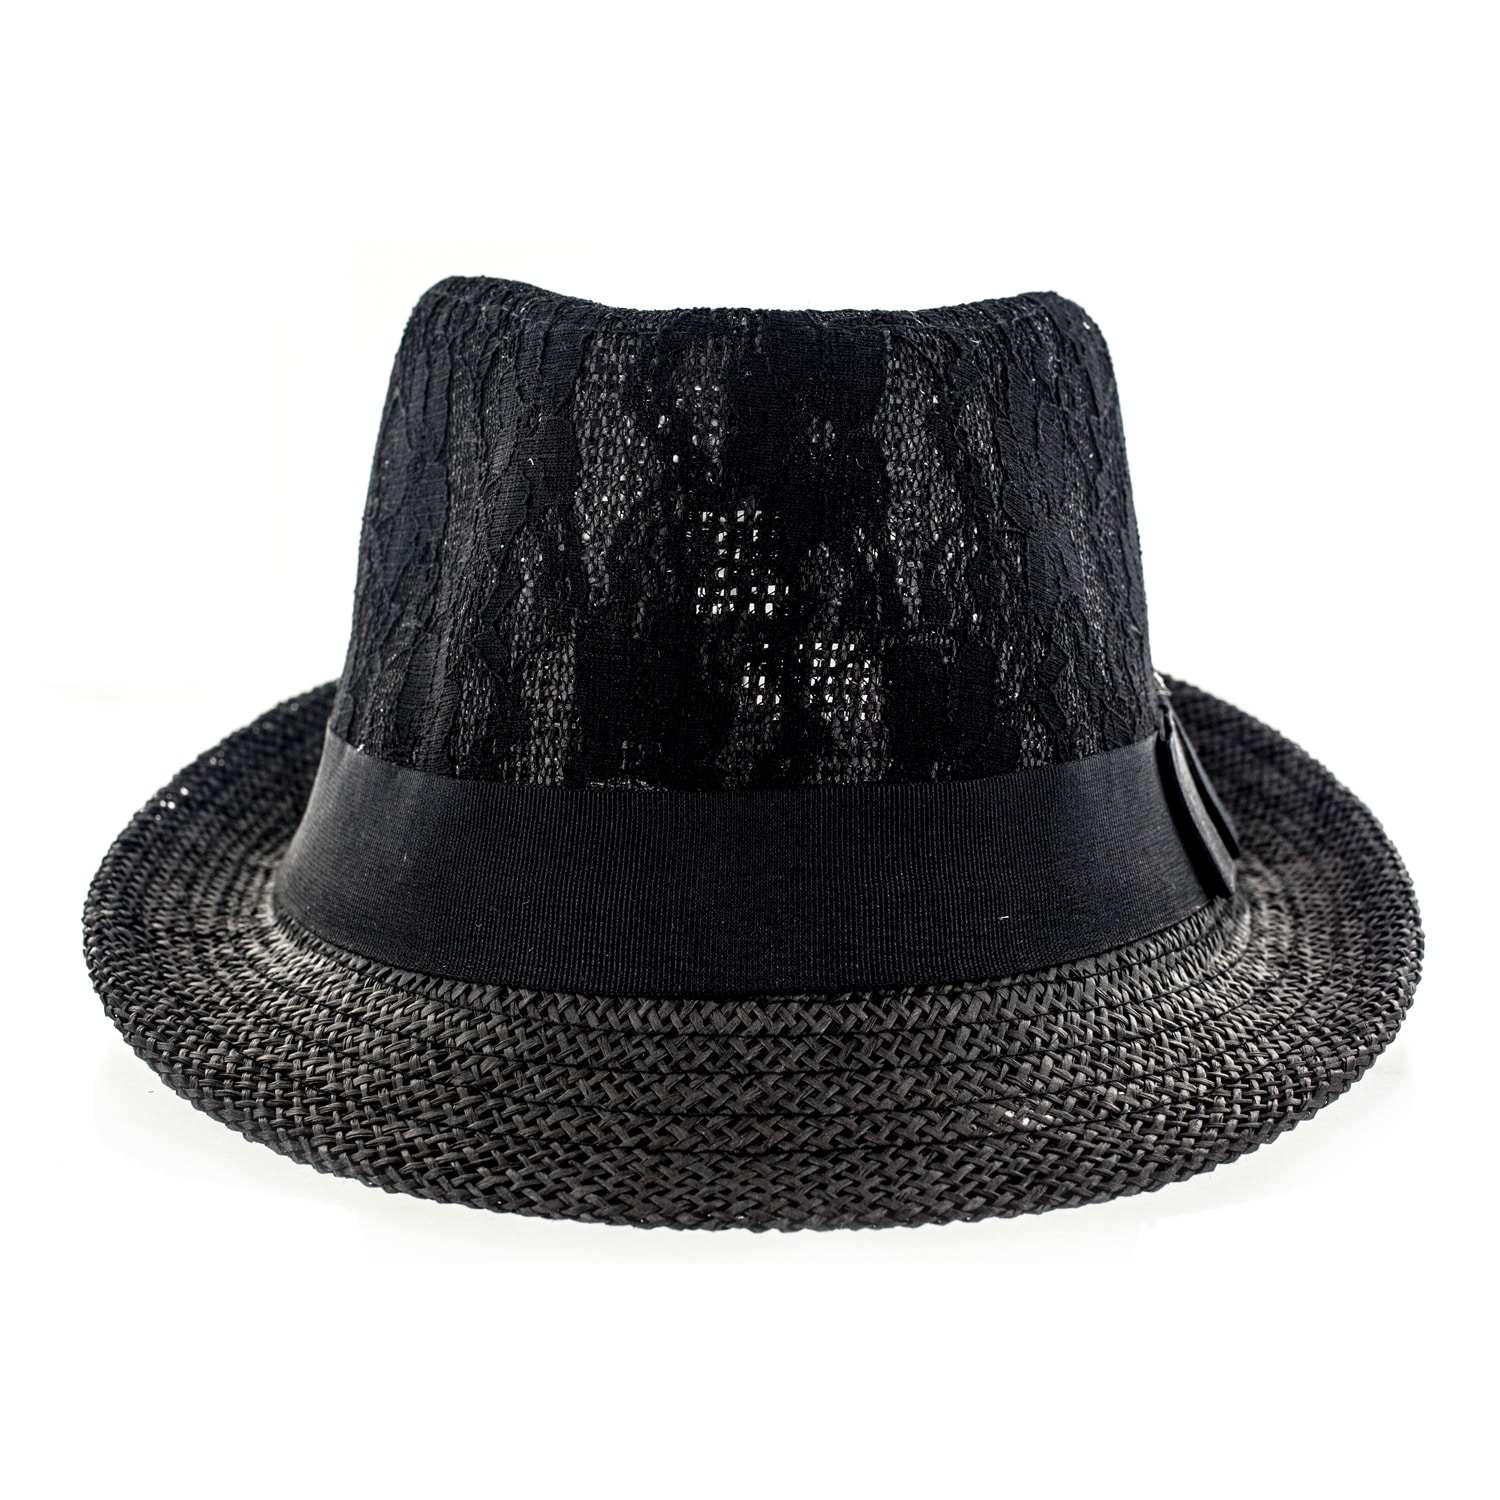 Faddism Fabric Fedora Hat